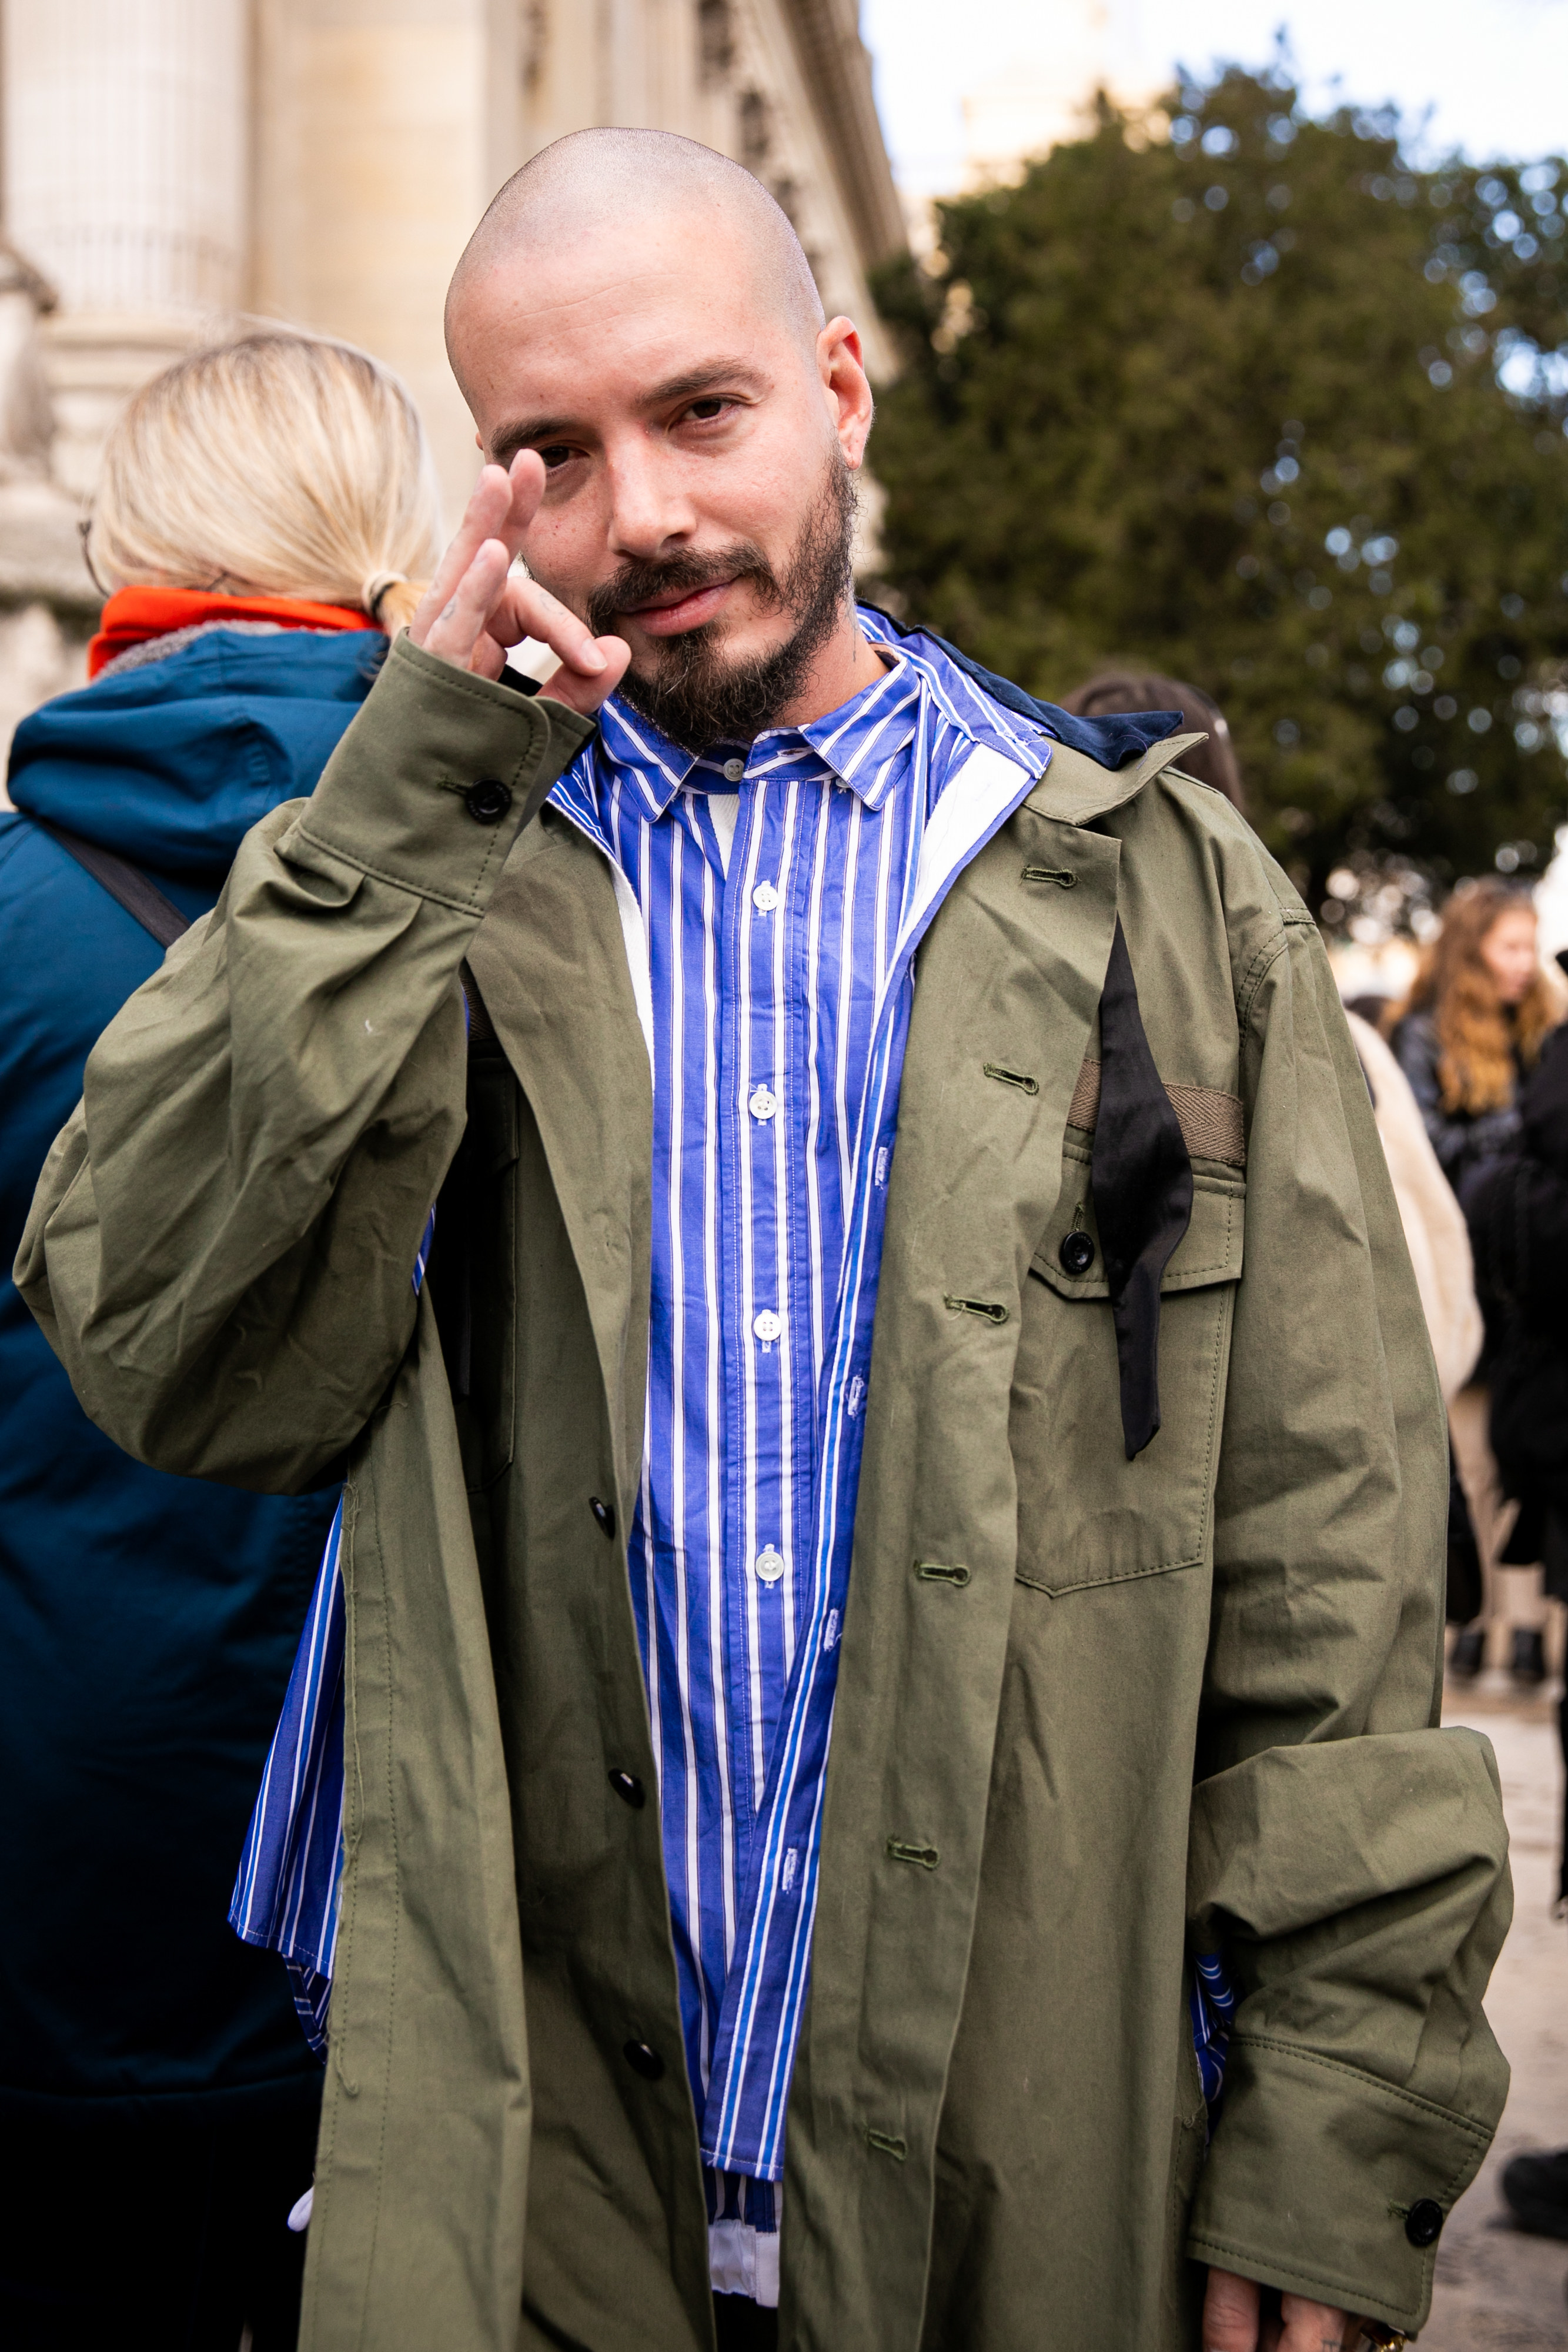 J Balvin, wearing a blue striped shirt and khaki jacket, is seen outside the Sacai show during the Paris Fashion Week - Menswear F/W 2020-2021 on on January 18, 2020 in Paris, France